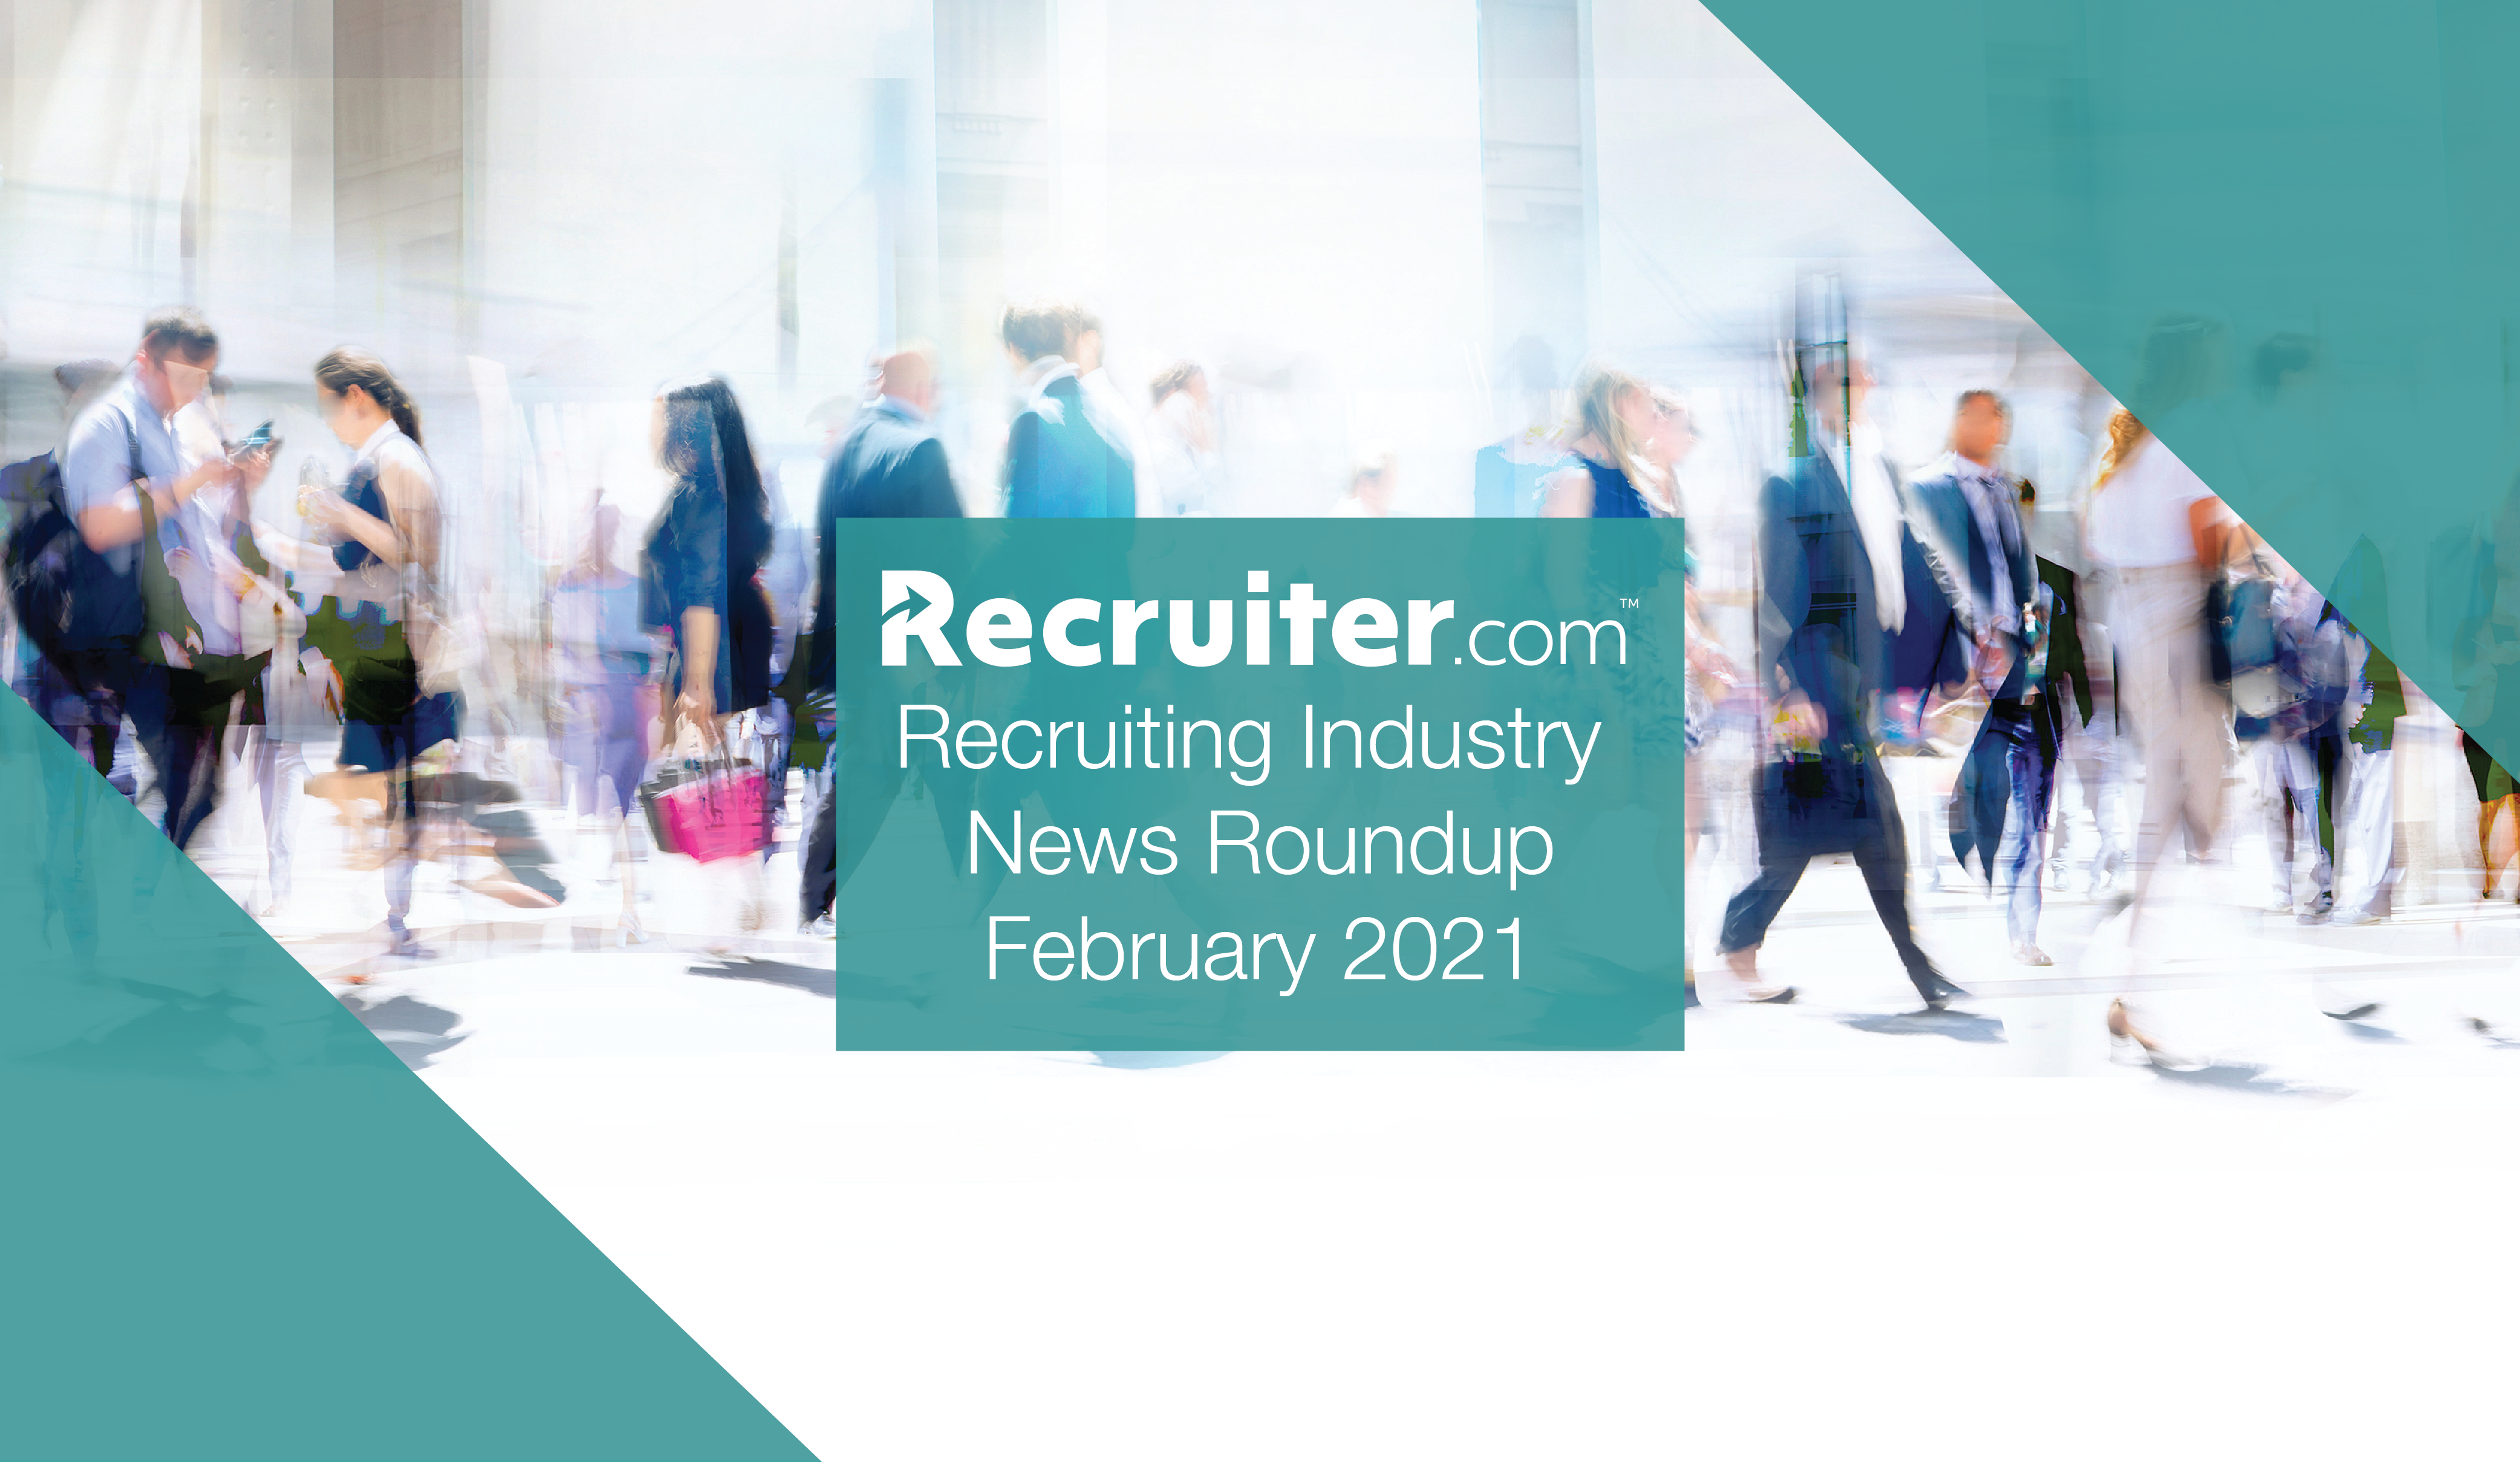 recruiting industry news